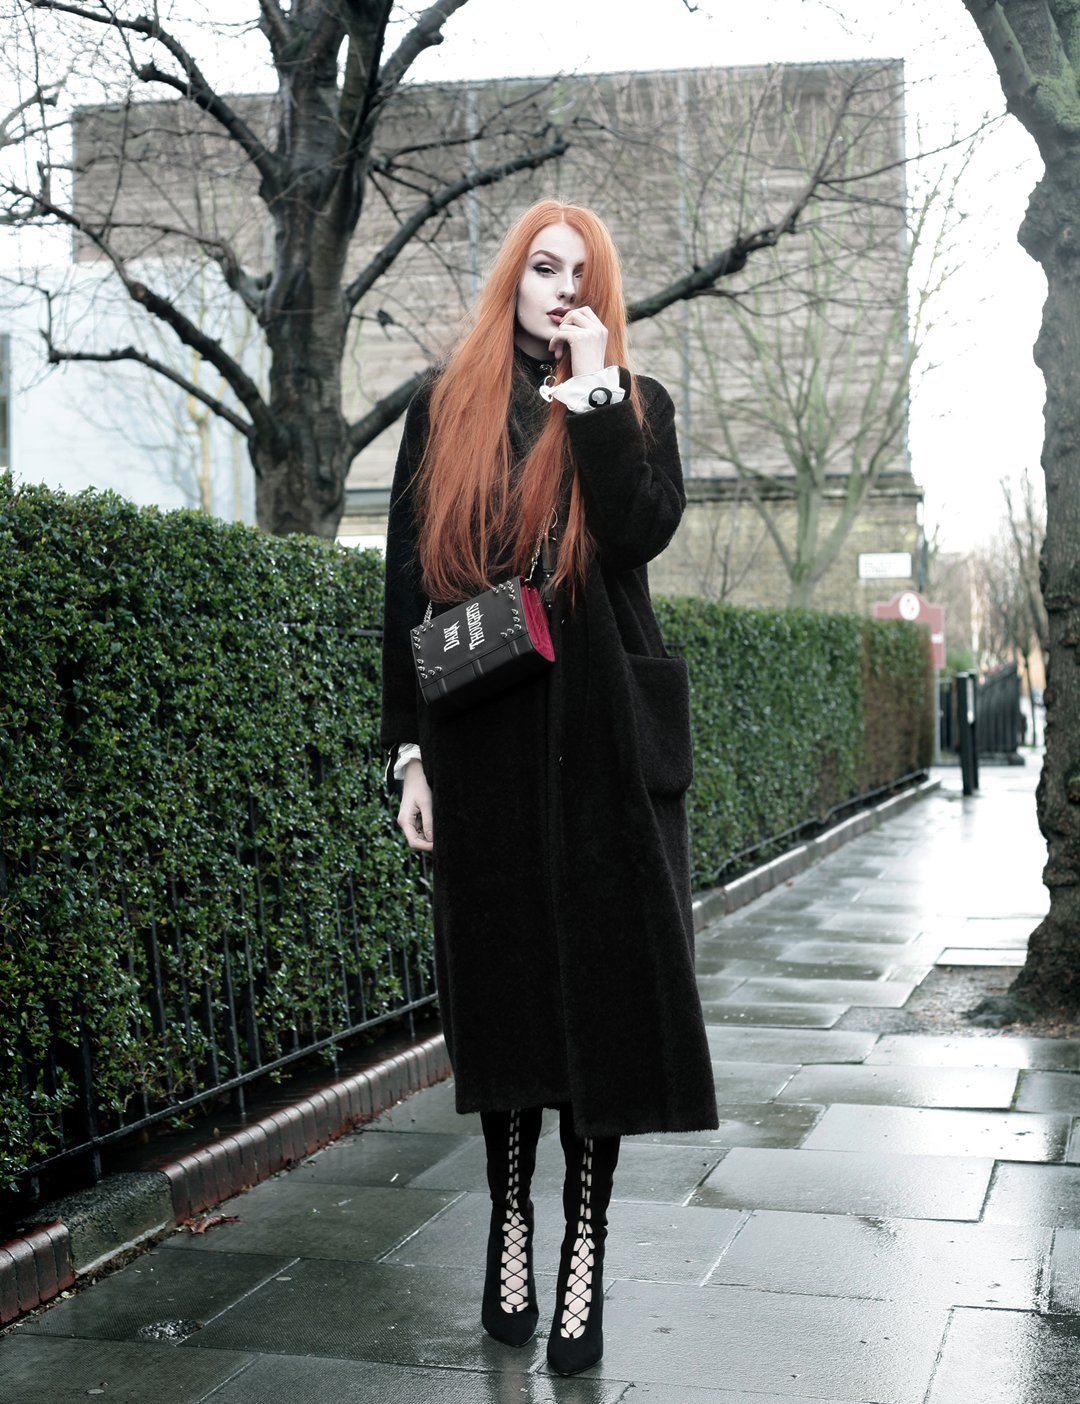 Olivia Emily wears Skinny Bags Dark Thoughts Clutch, Vintage Max Mara coat, and Asos Lace Up Boots